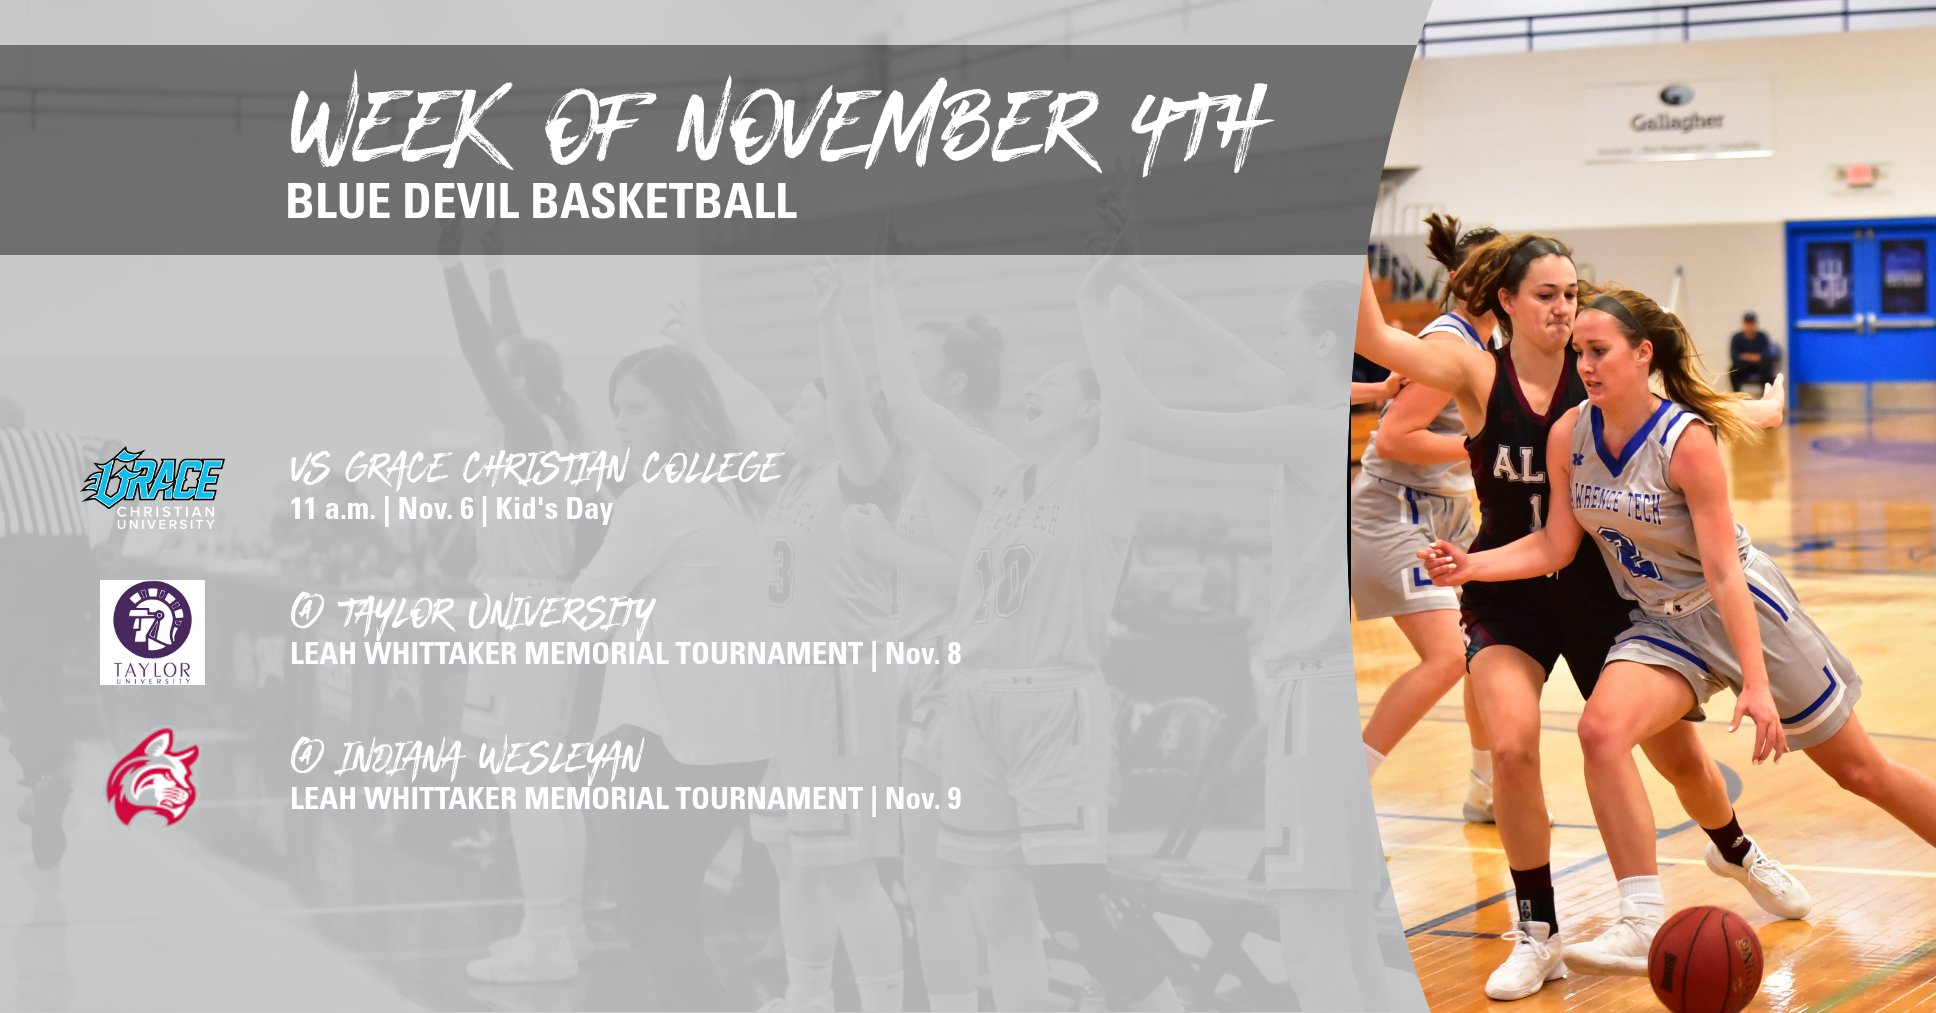 Blue Devils Play Three Games This Week; LTU Hosts Kid's Day Versus Grace Christian on November 6th